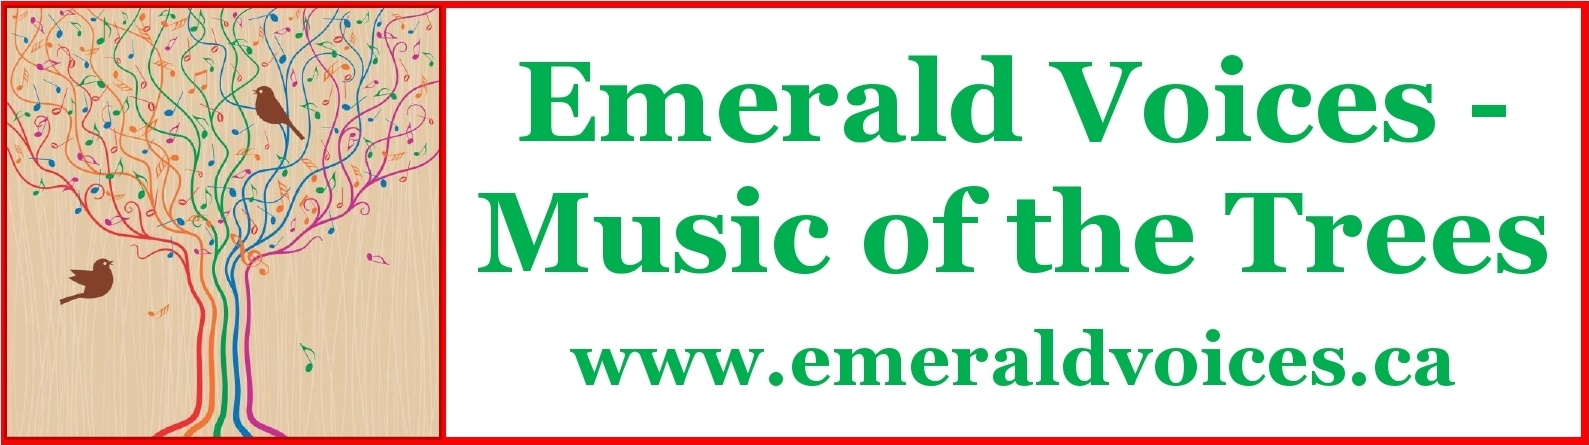 Emerald Voices.ca